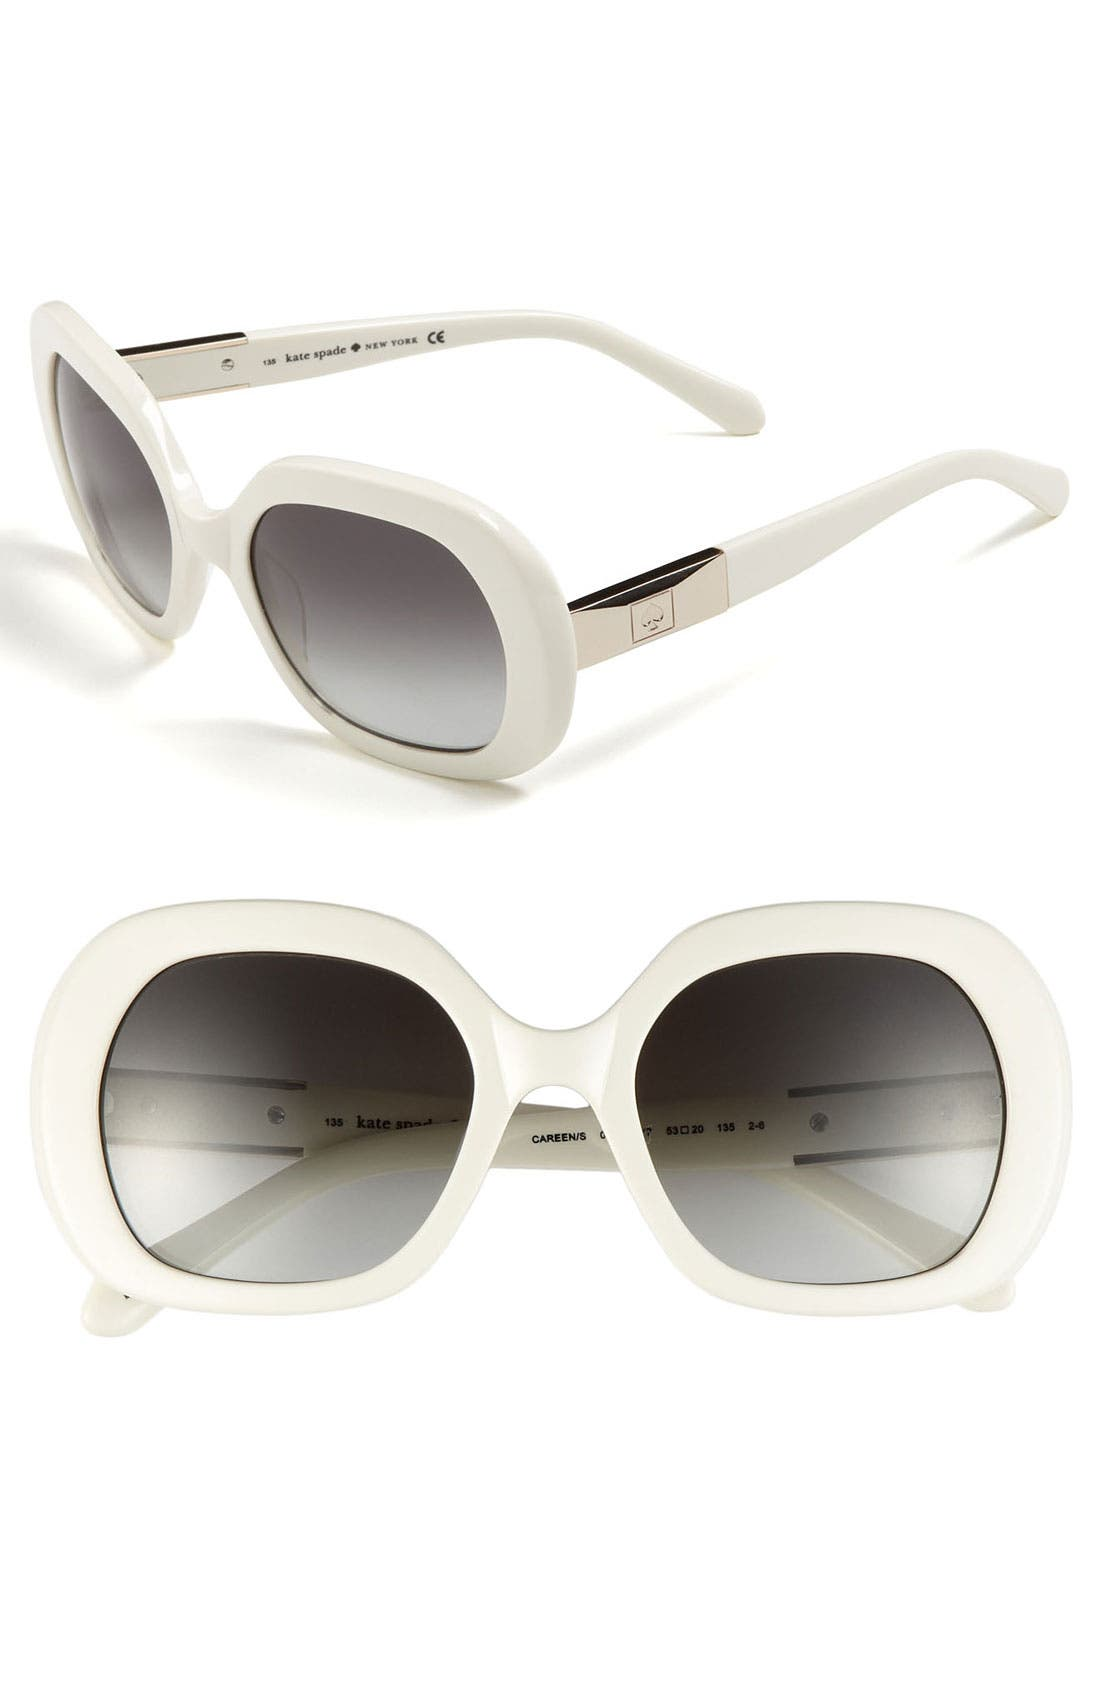 Alternate Image 1 Selected - kate spade new york 'careen' 53mm sunglasses